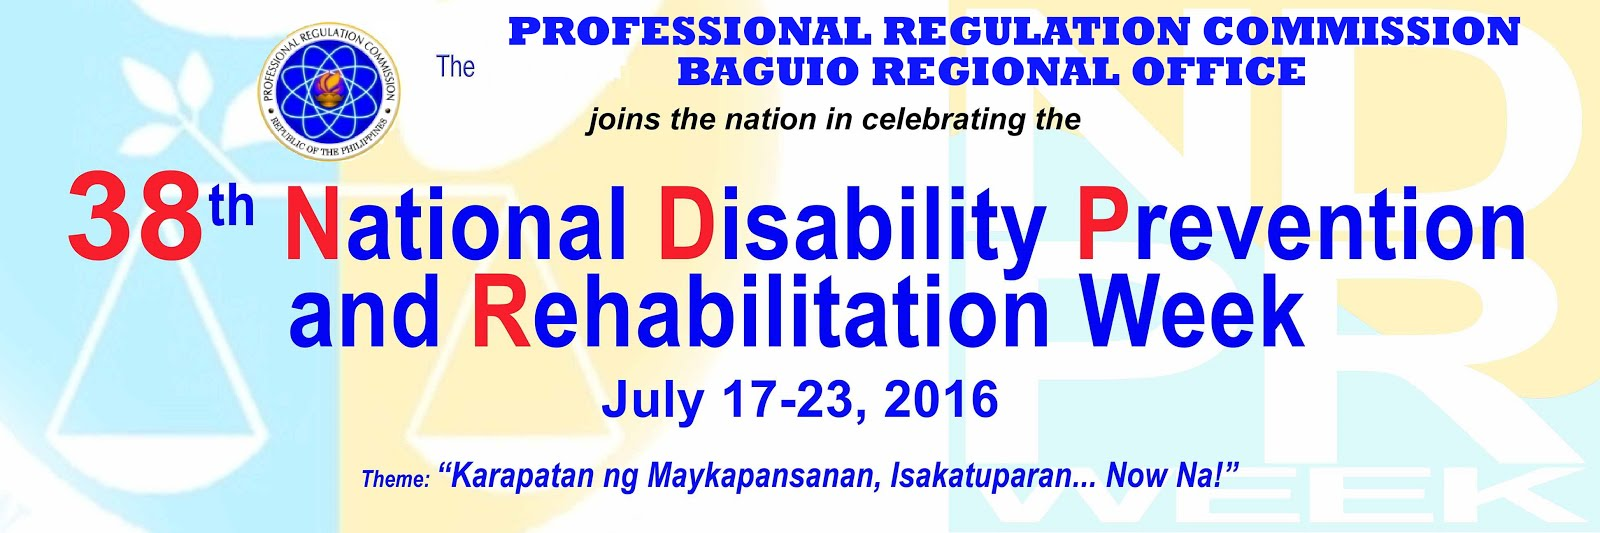 National Disability Prevention and Rehabilitation Week